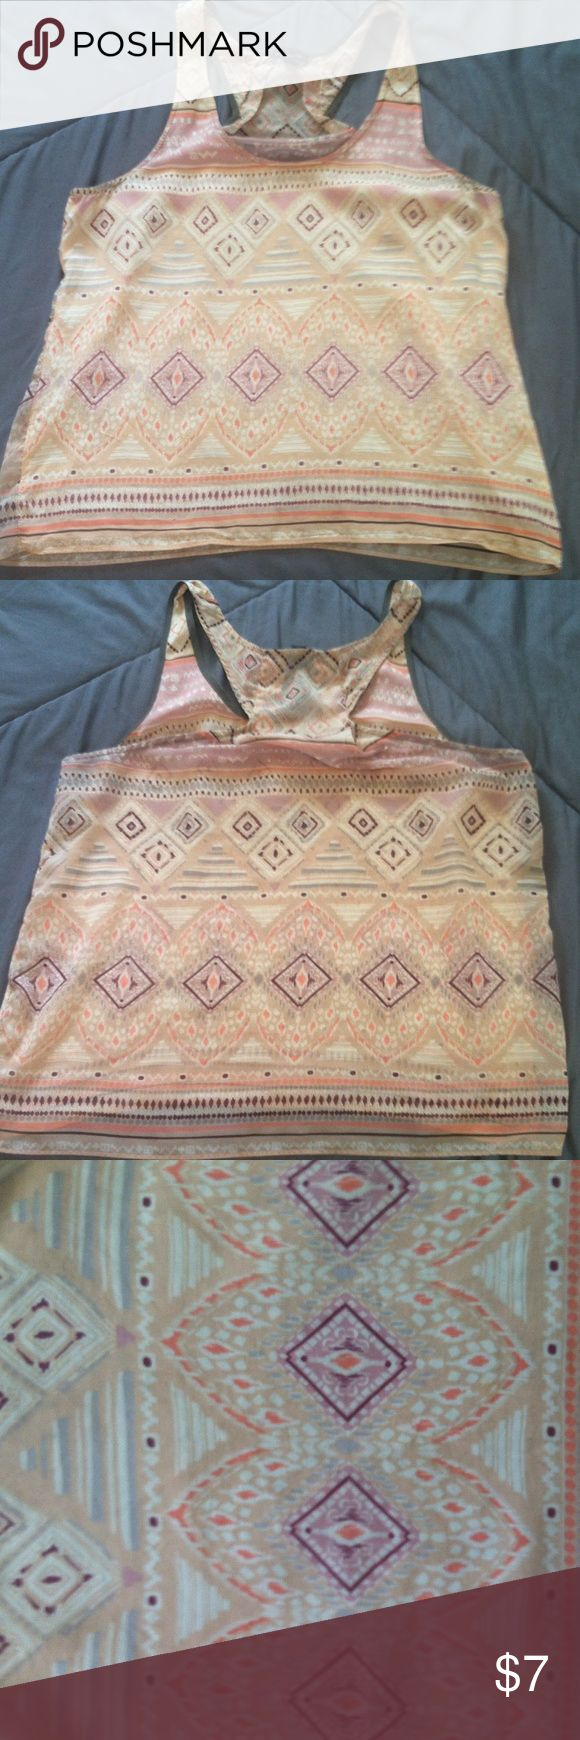 LAST CHANCE!! American Eagle Tank beautiful shirt great condition worn a few times American Eagle Outfitters Tops Tank Tops